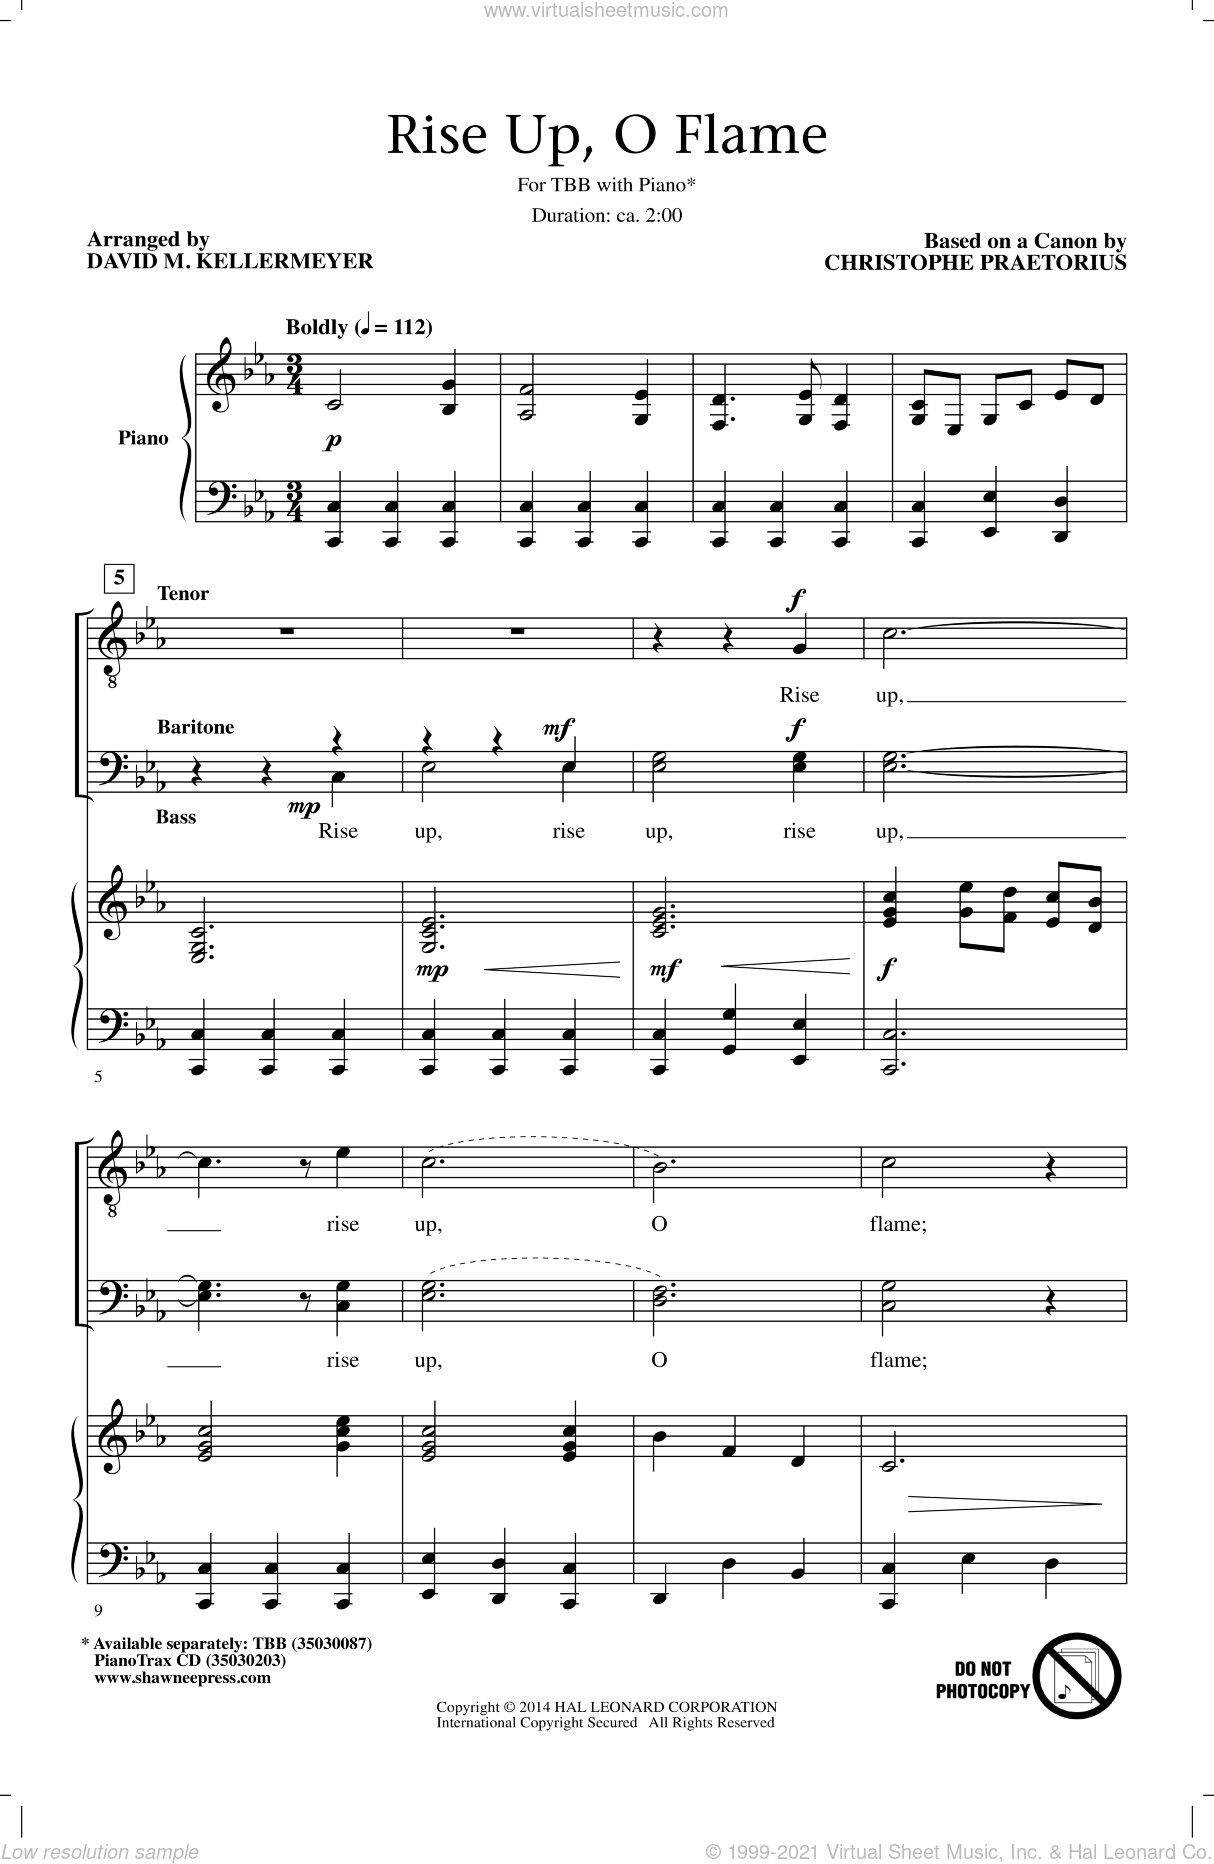 Rise Up, O Flame sheet music for choir (TBB: tenor, bass) by David M. Kellermeyer, Cristophe Praetorious and Christophe Praetorius, intermediate skill level